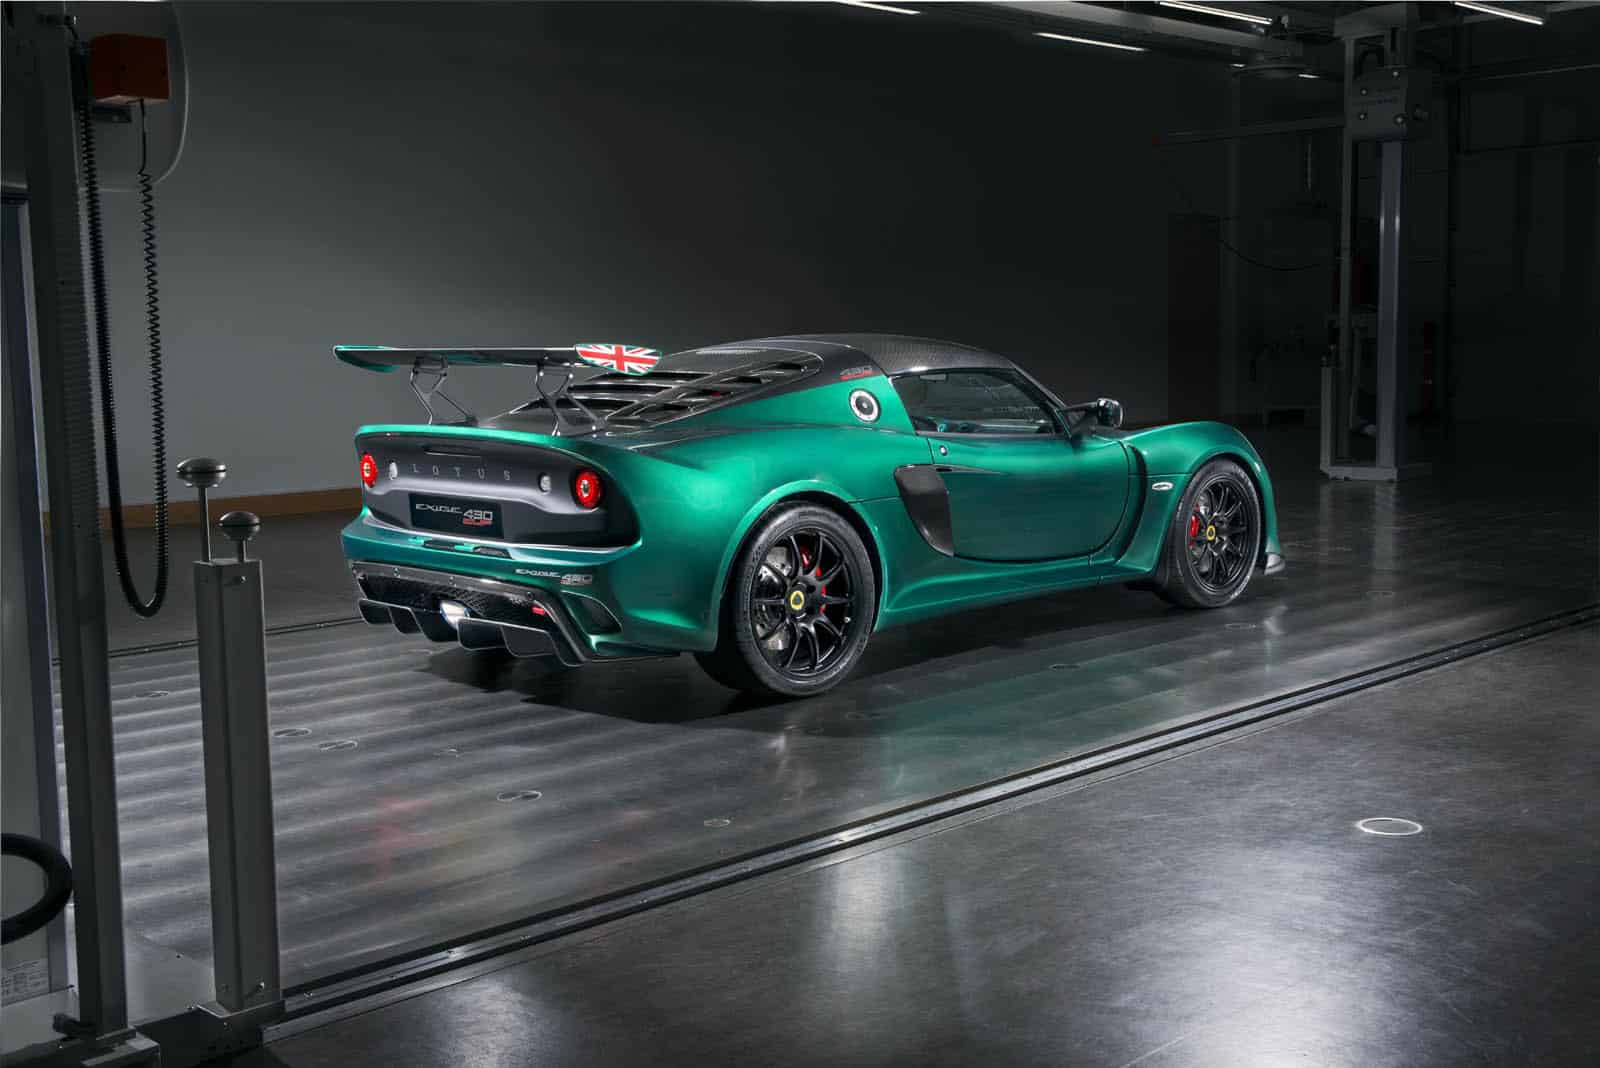 Lotus Goes Beyond The Limits With The Exige Cup 430